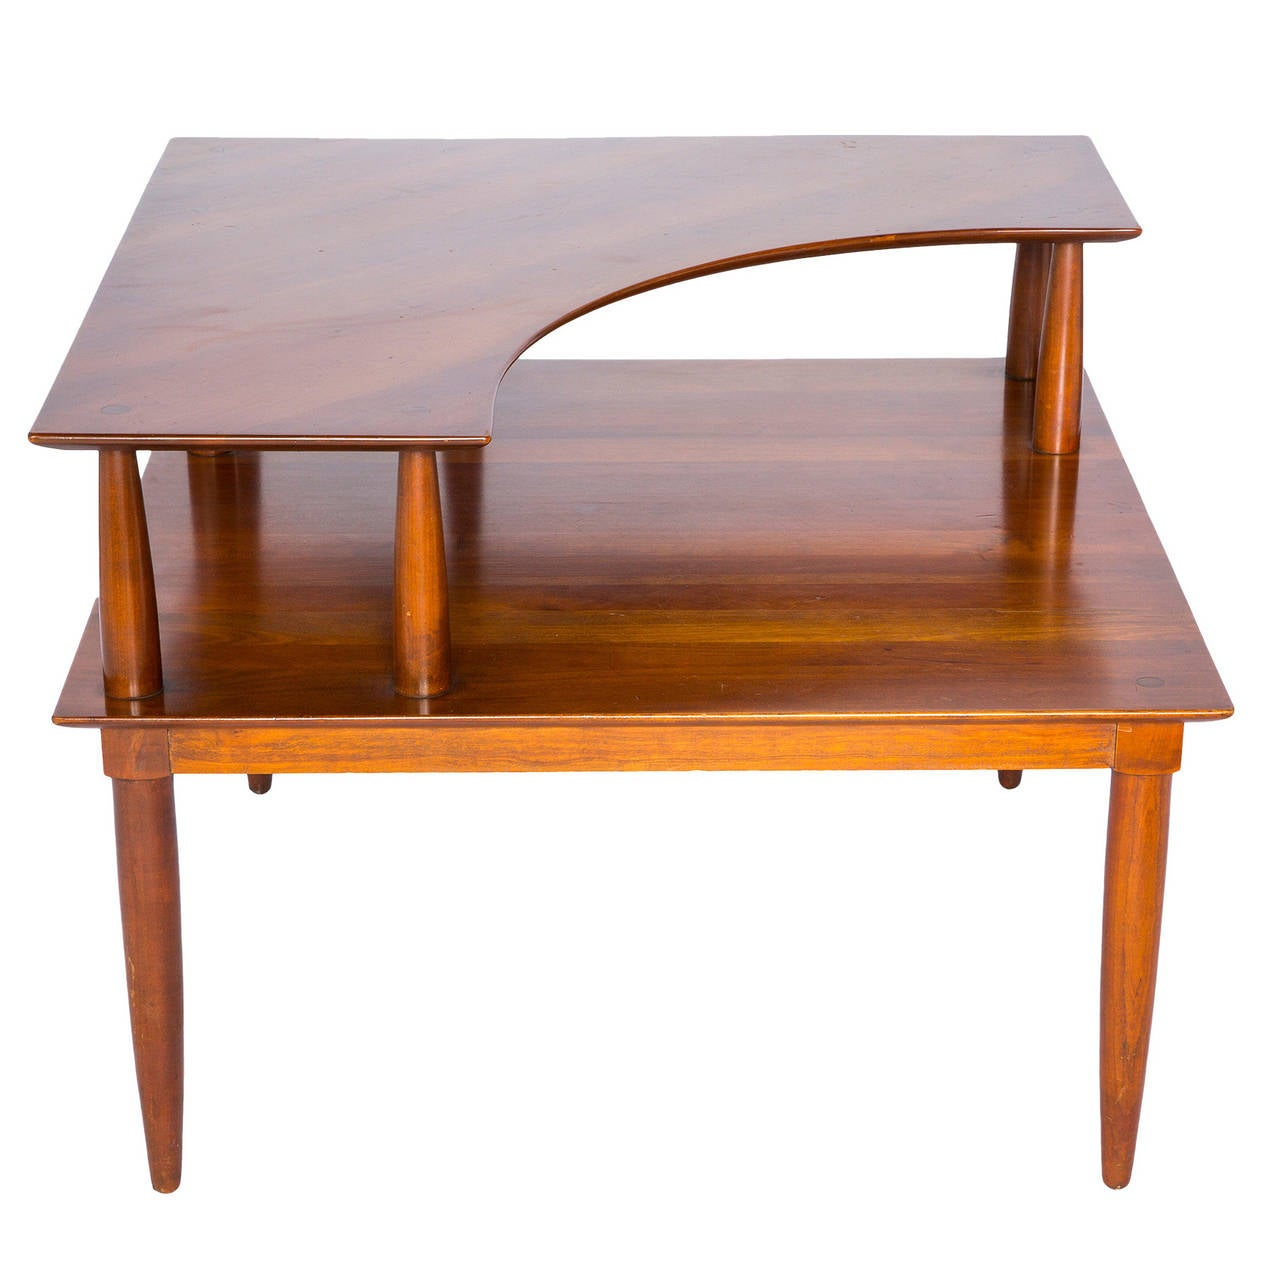 Danish modern corner cocktail table at 1stdibs for Modern furniture coffee table